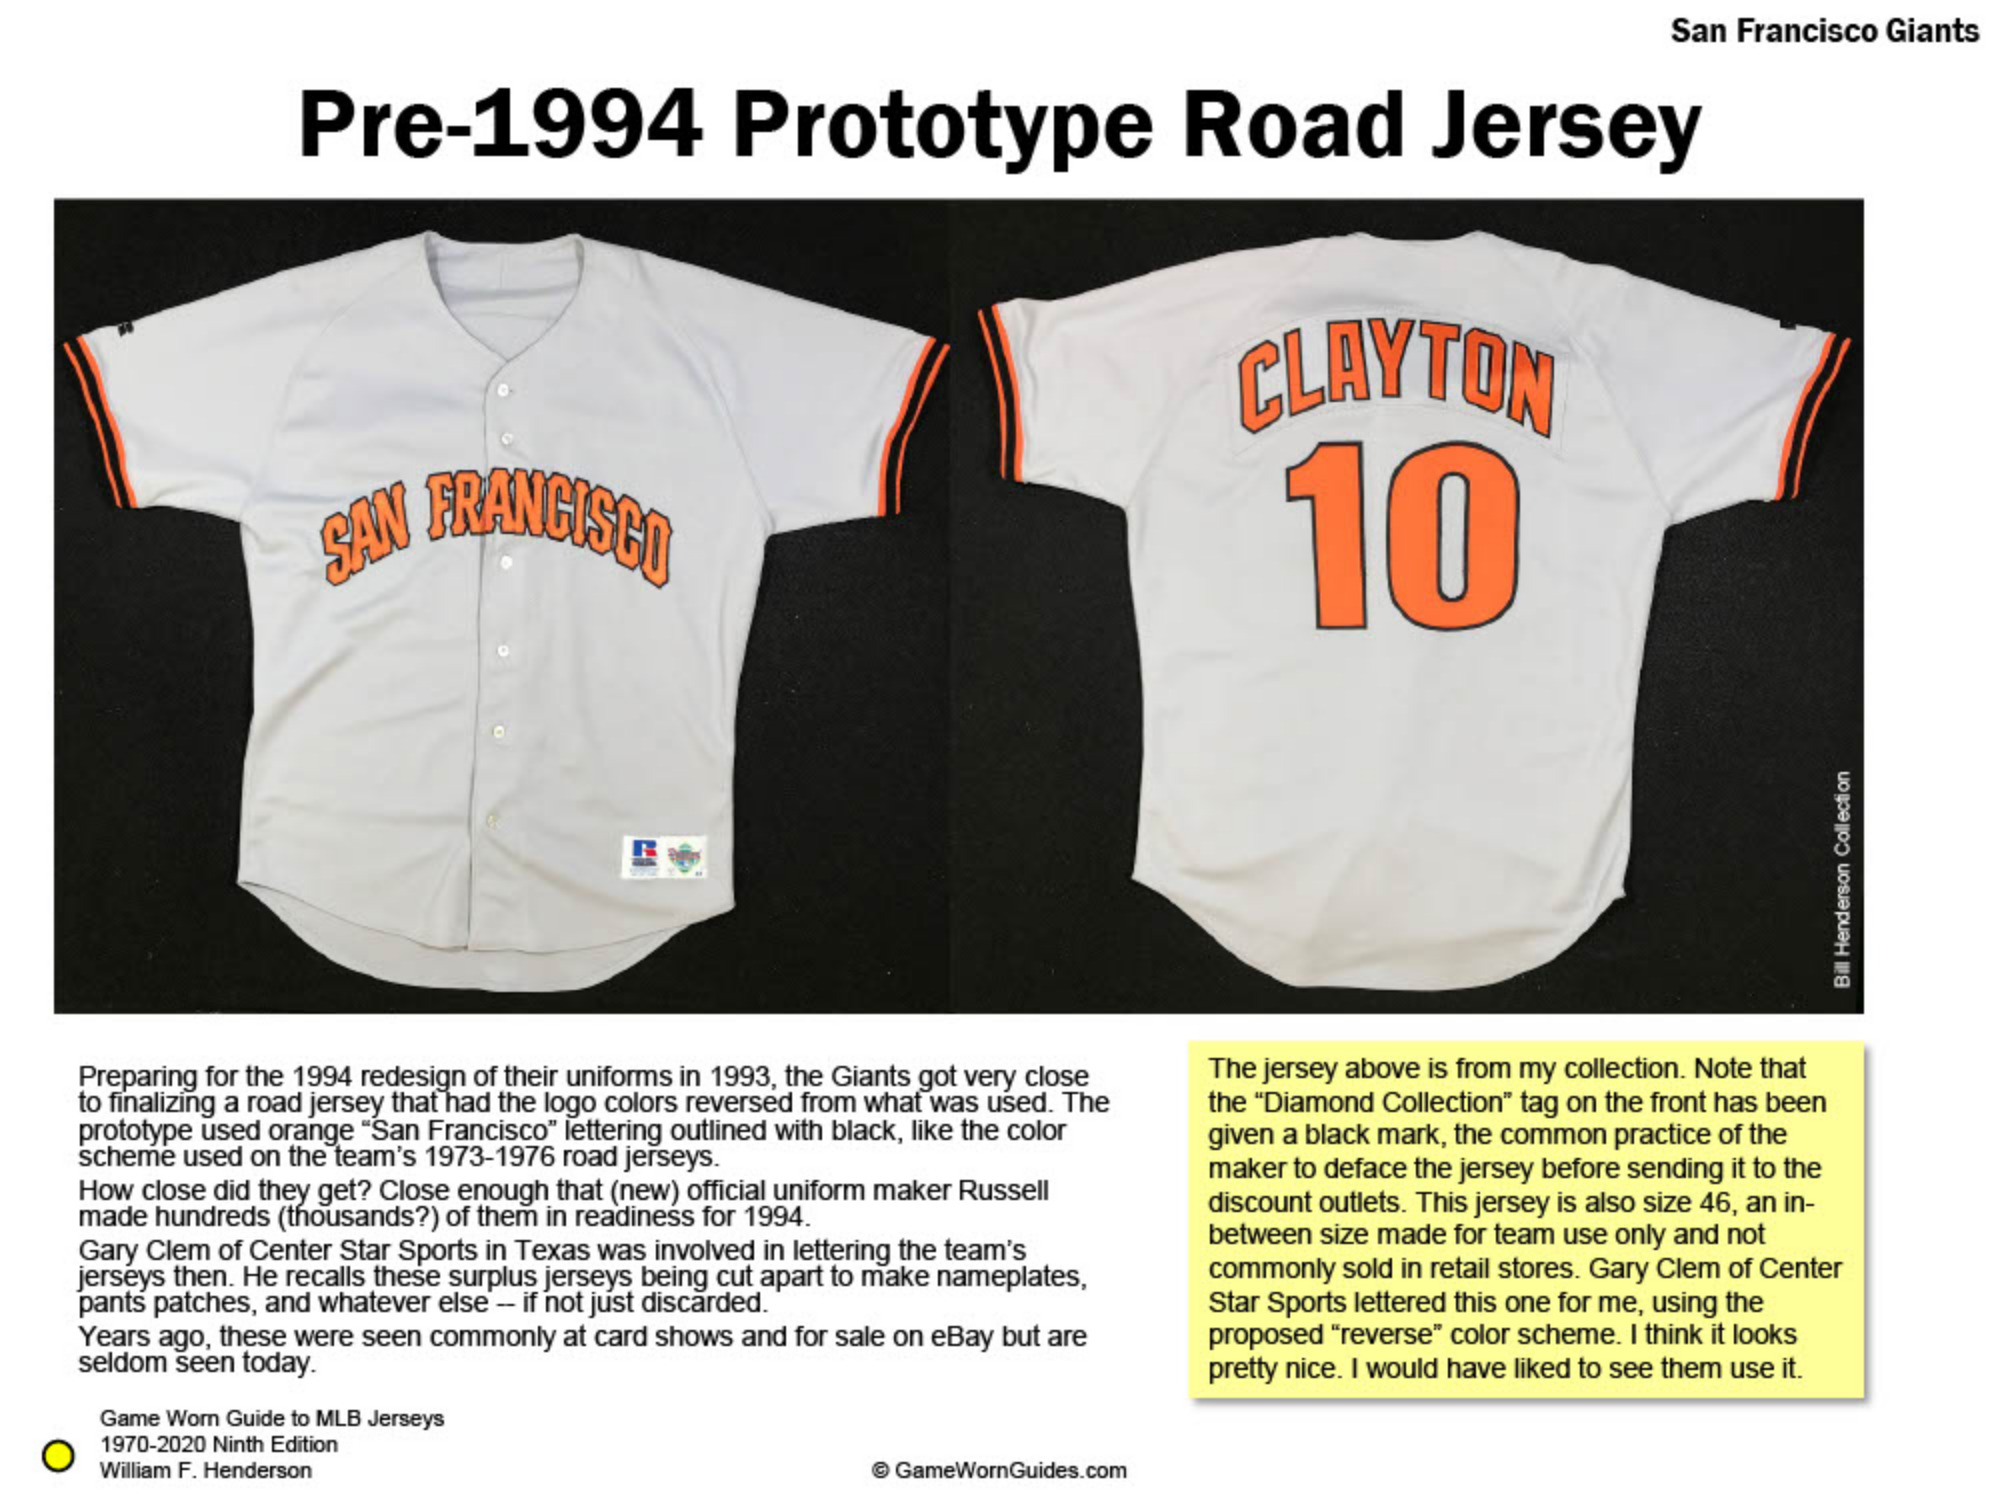 Game Worn Guide to San Francisco Giants Jerseys (1970-2020)